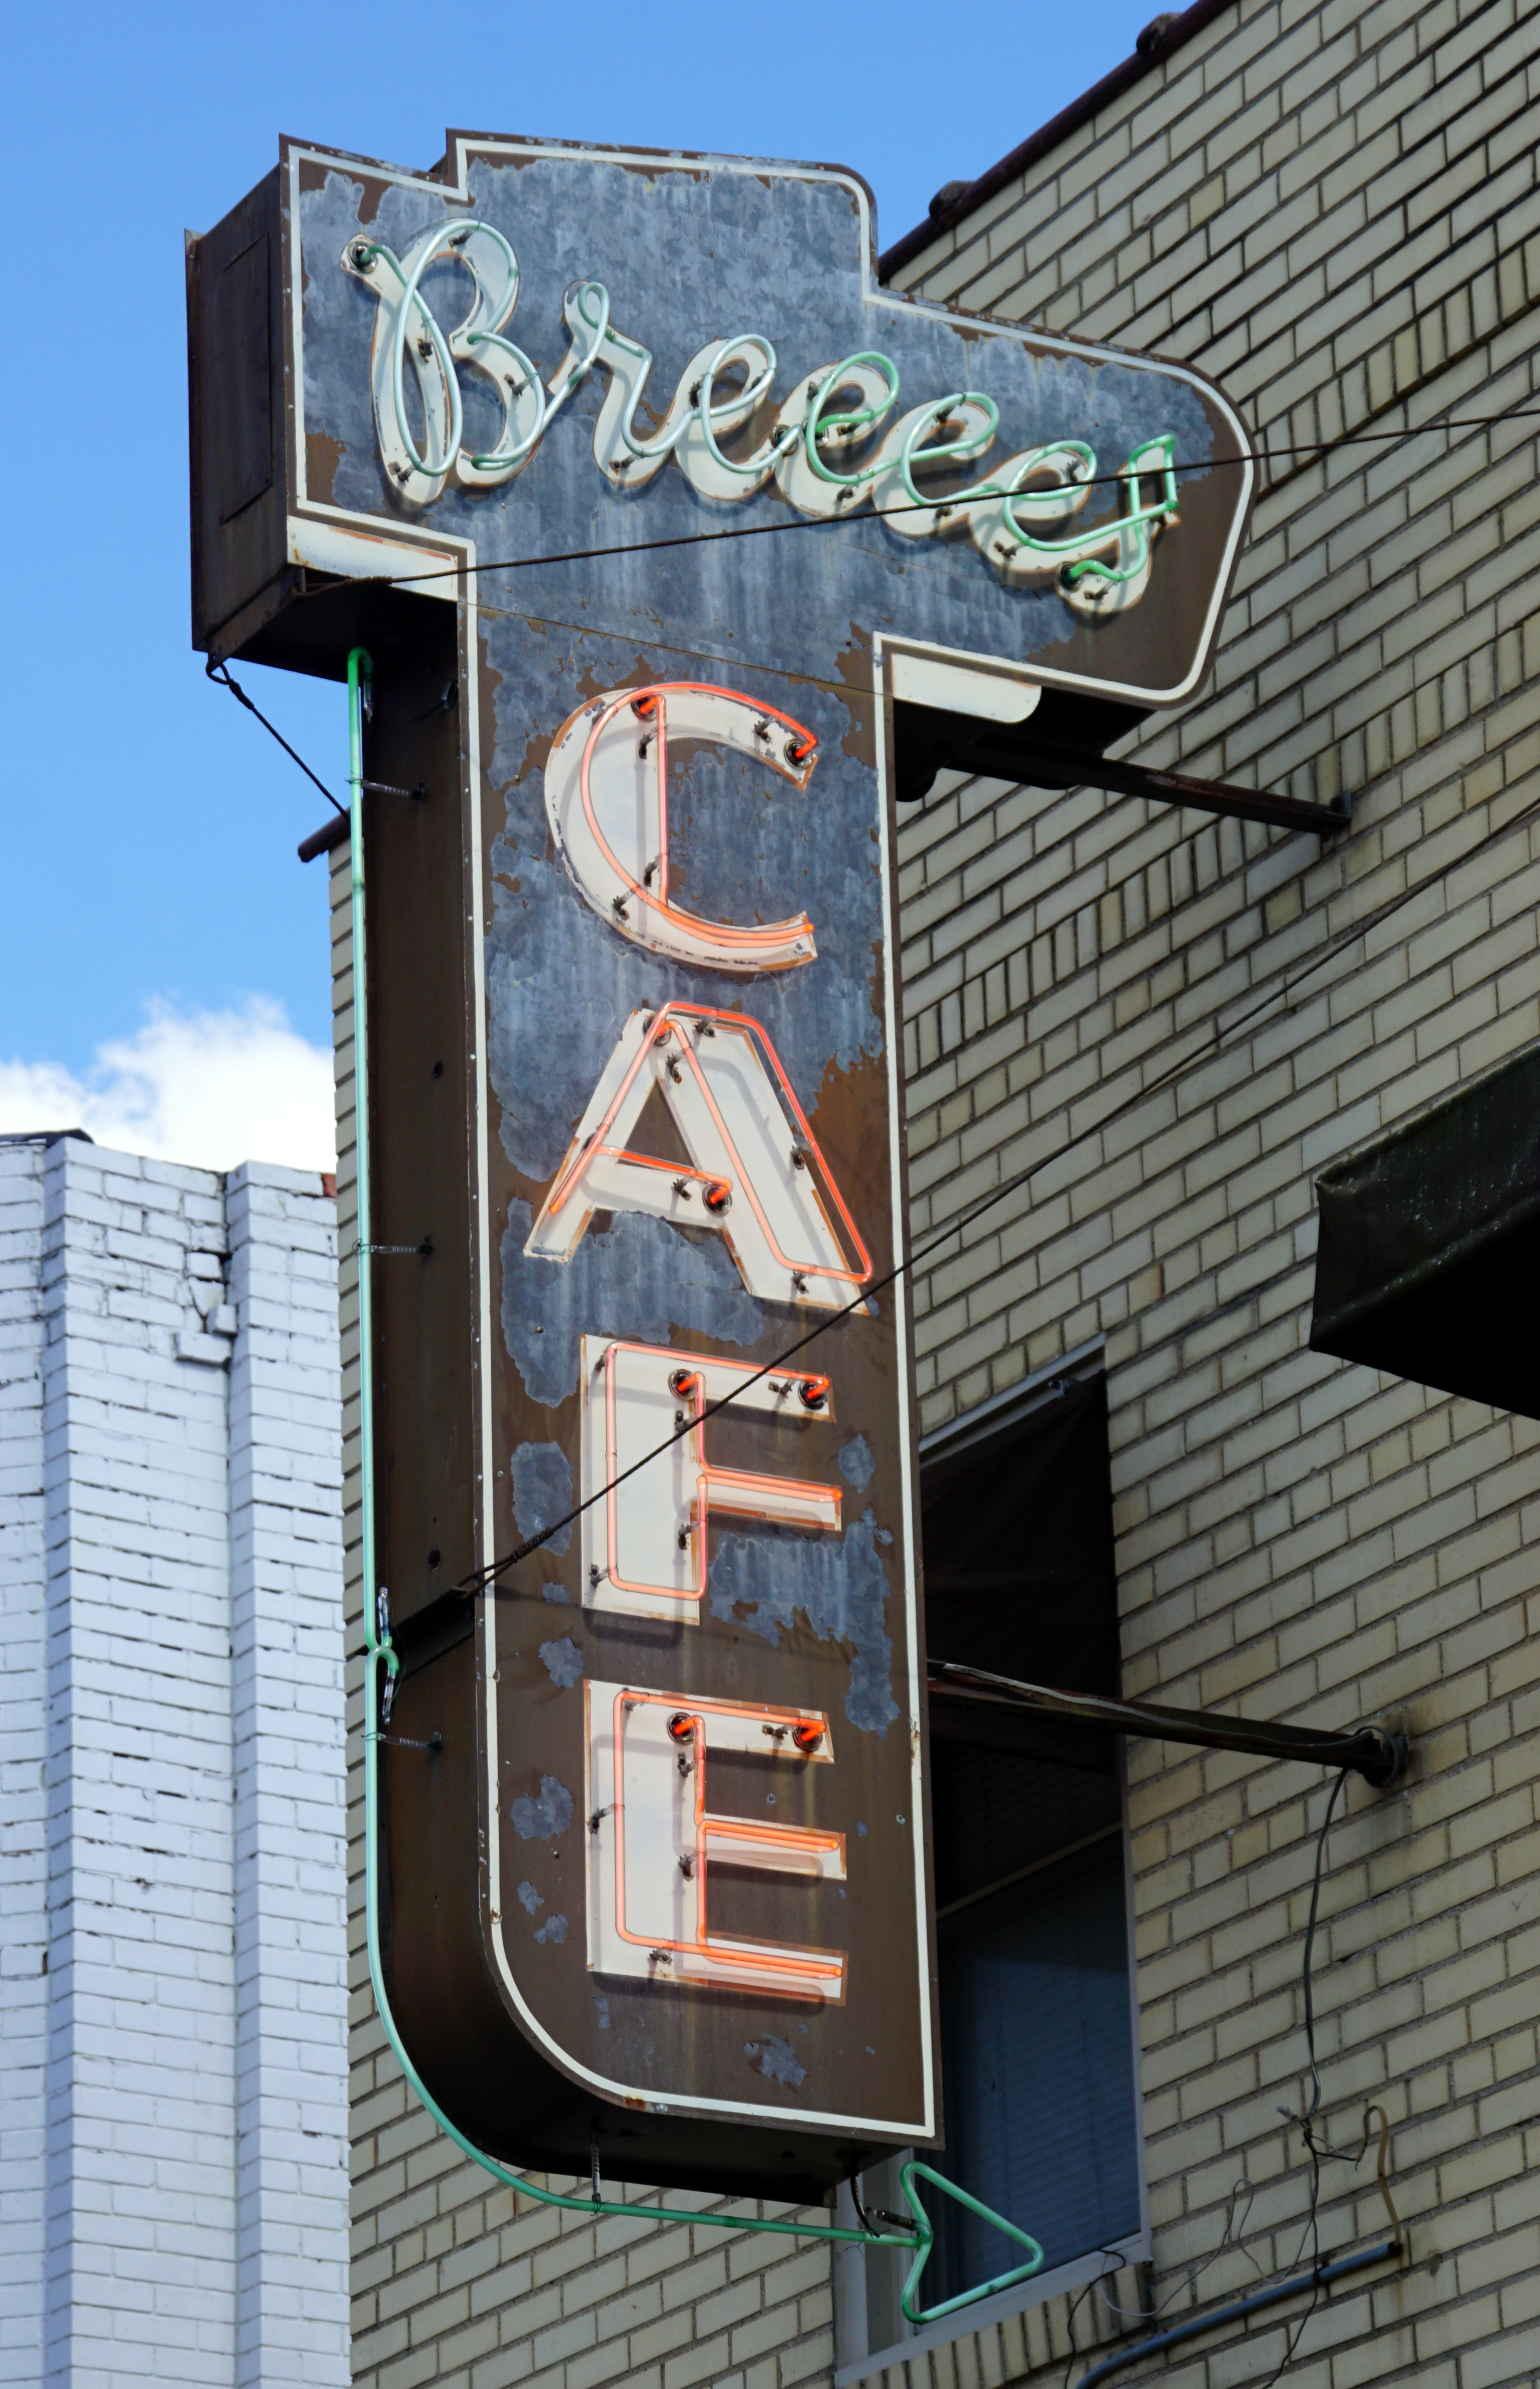 Breece's Cafe - 111 South Public Square, Centerville, Tennessee U.S.A. - June 29, 2016